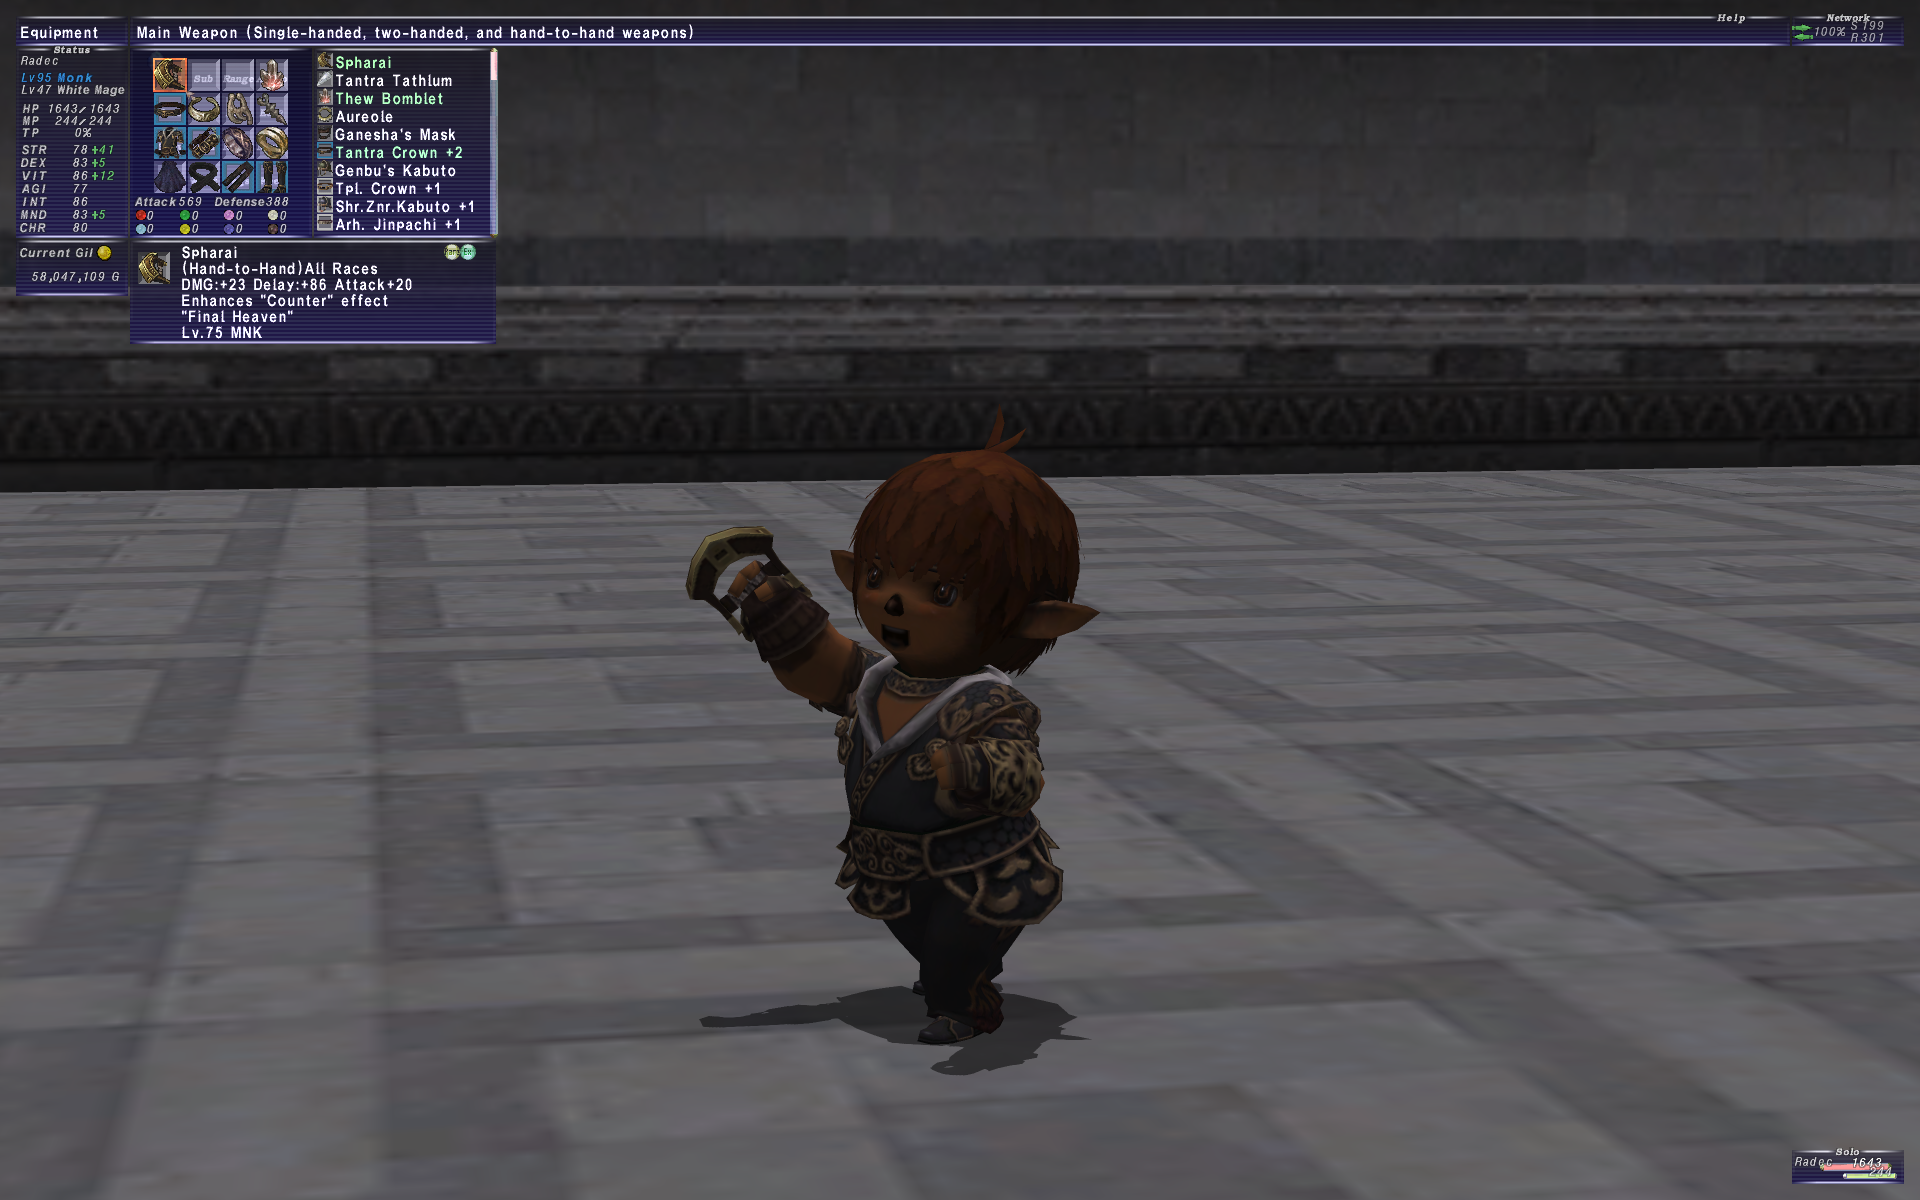 radec ffxi doing this that comes love down proph also caliburn grats tool shame like prophett moirai leviathan list relicmythic weapons seems completed known time long forever